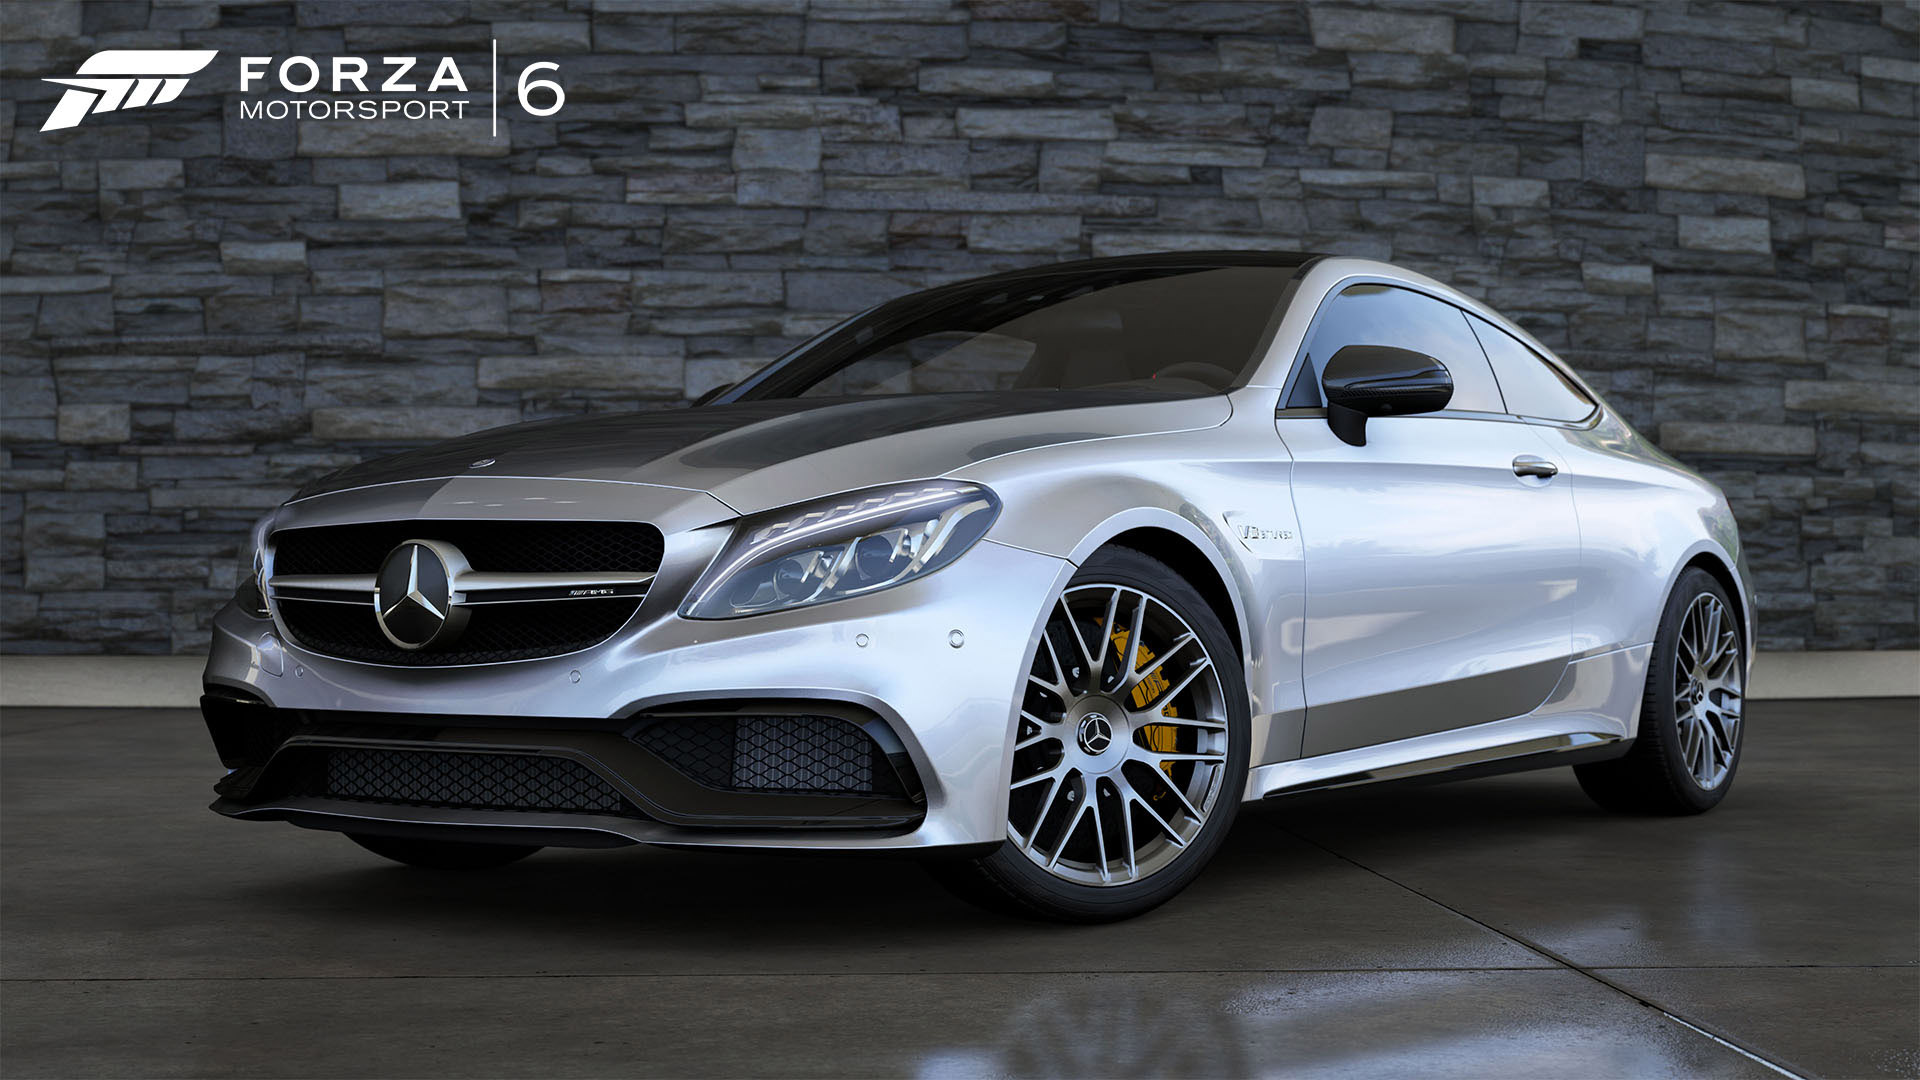 mercedes amg c63 s coupe is featured in forza motorsport 6. Black Bedroom Furniture Sets. Home Design Ideas